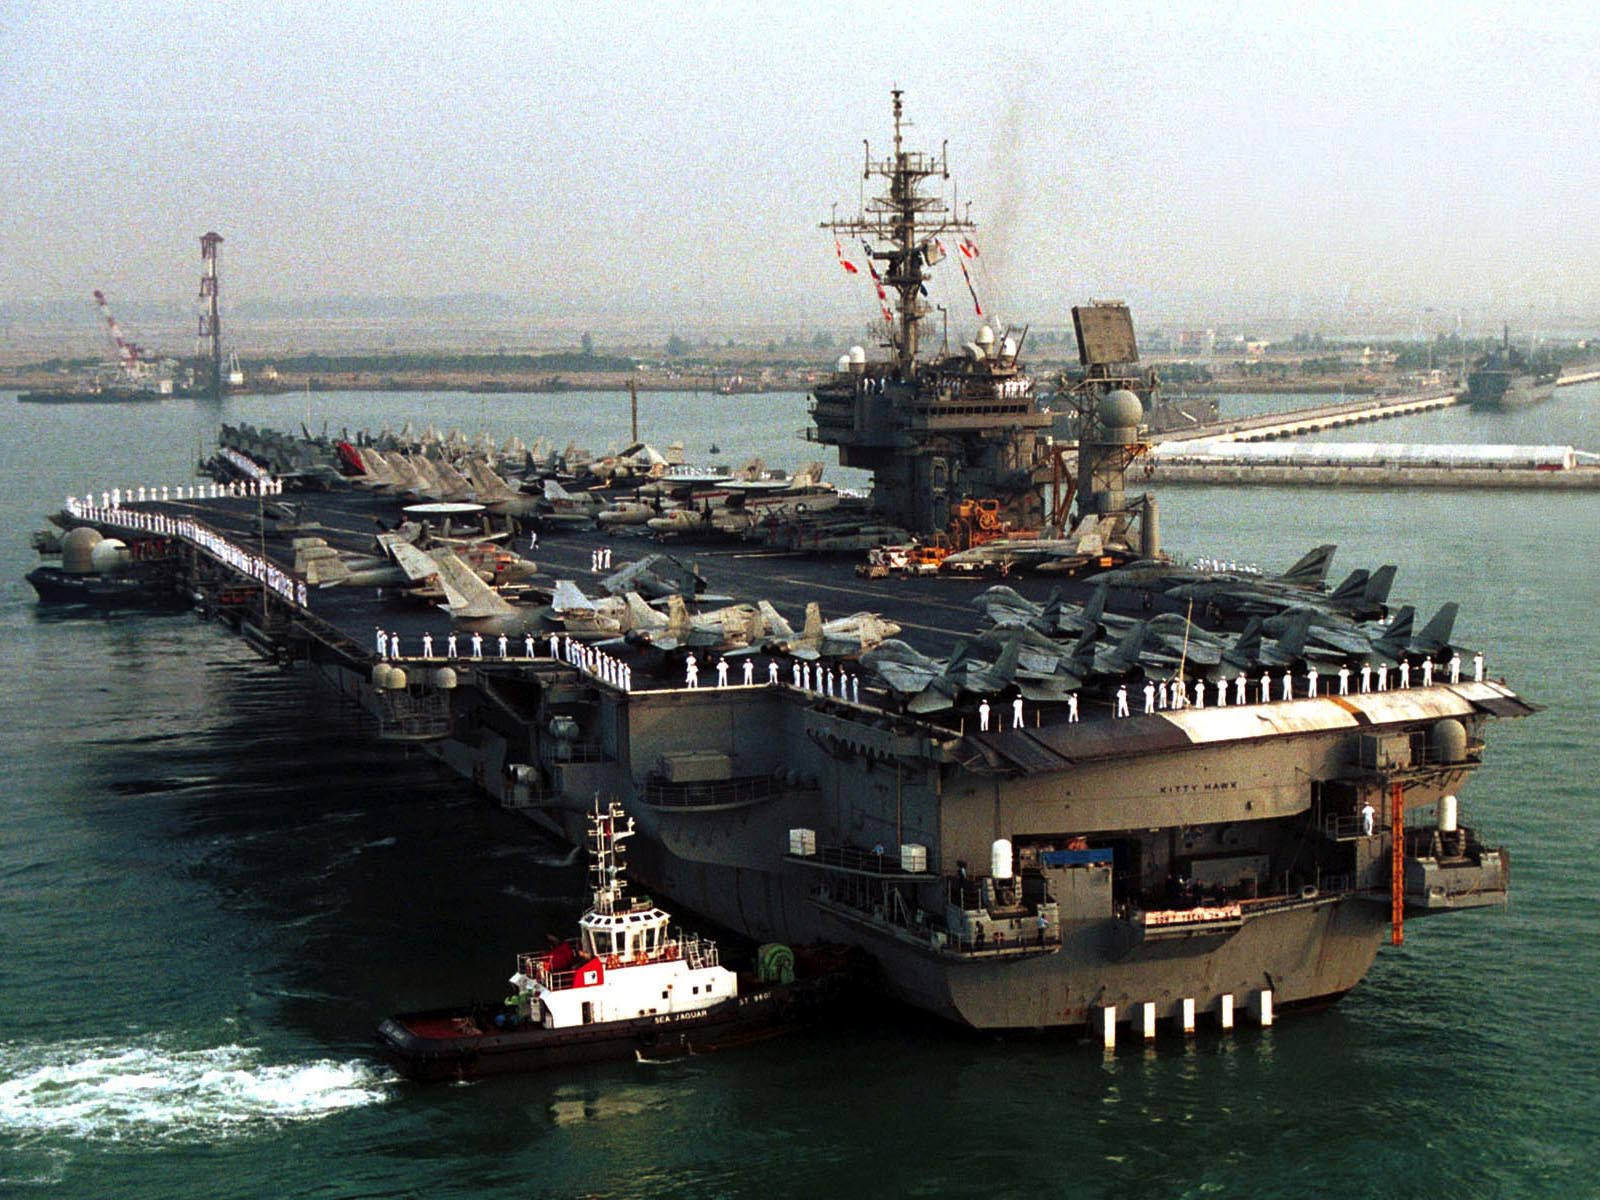 USS Kitty Hawk in Singapore Harbor wallpaper